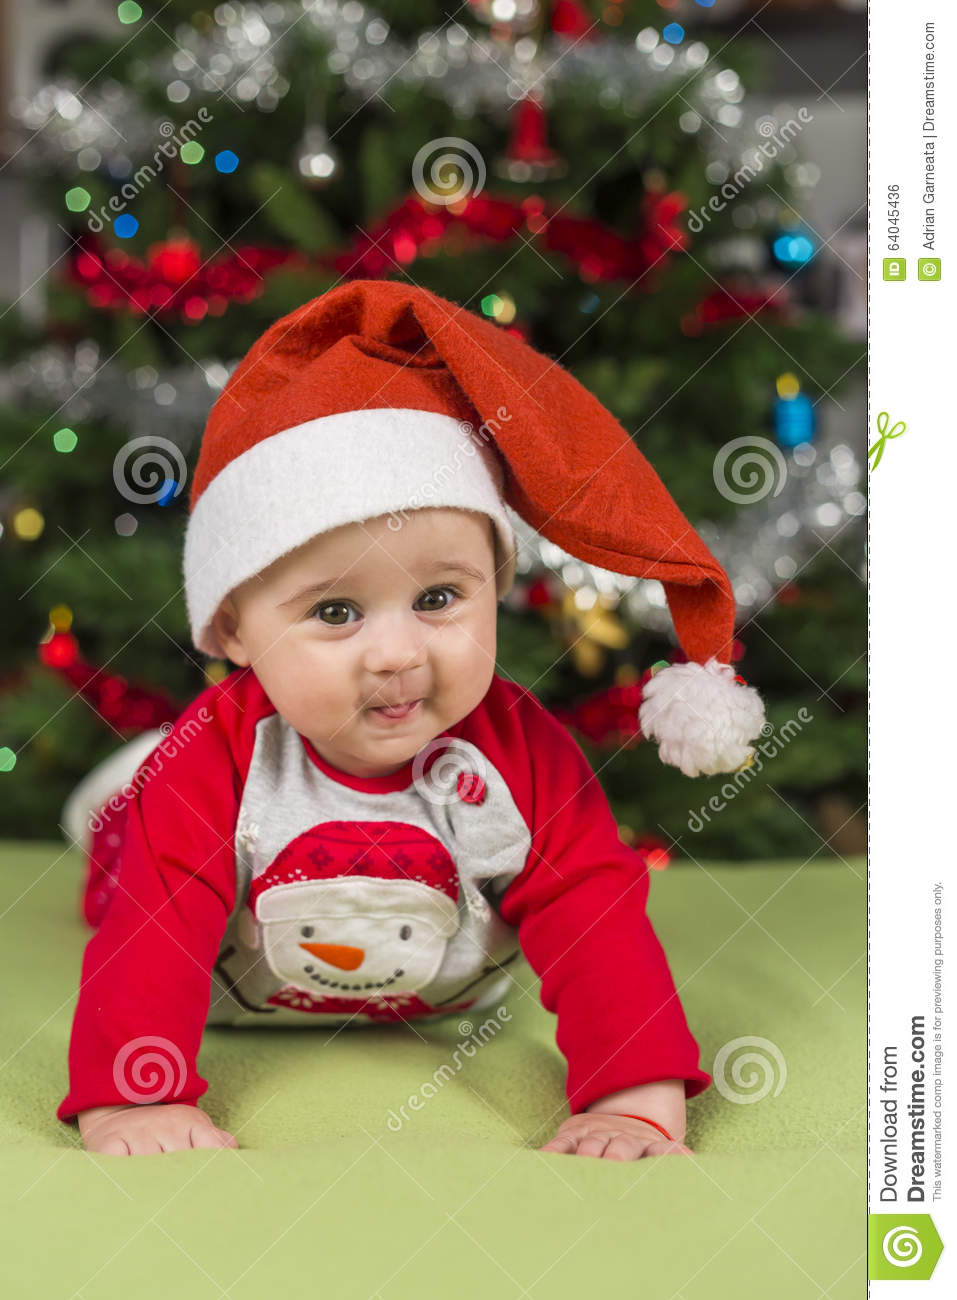 A smile from a little girl that stays in hands with Santa cap with Christmas  theme background 6d5393644